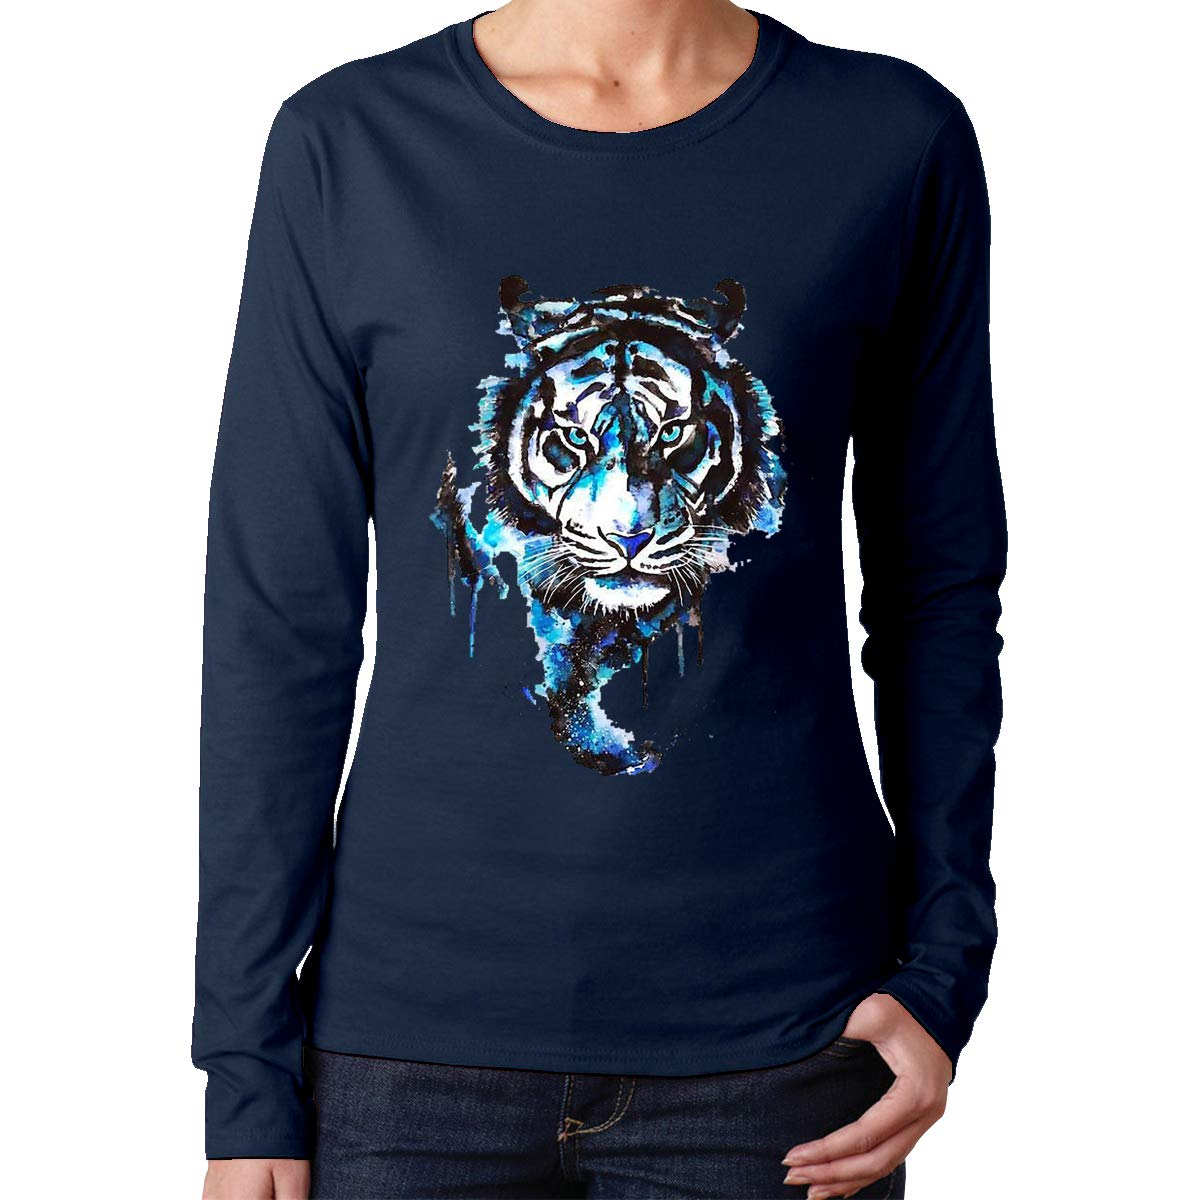 The Tiger Is Coming Fashion Funny Graphic Shirt 6107